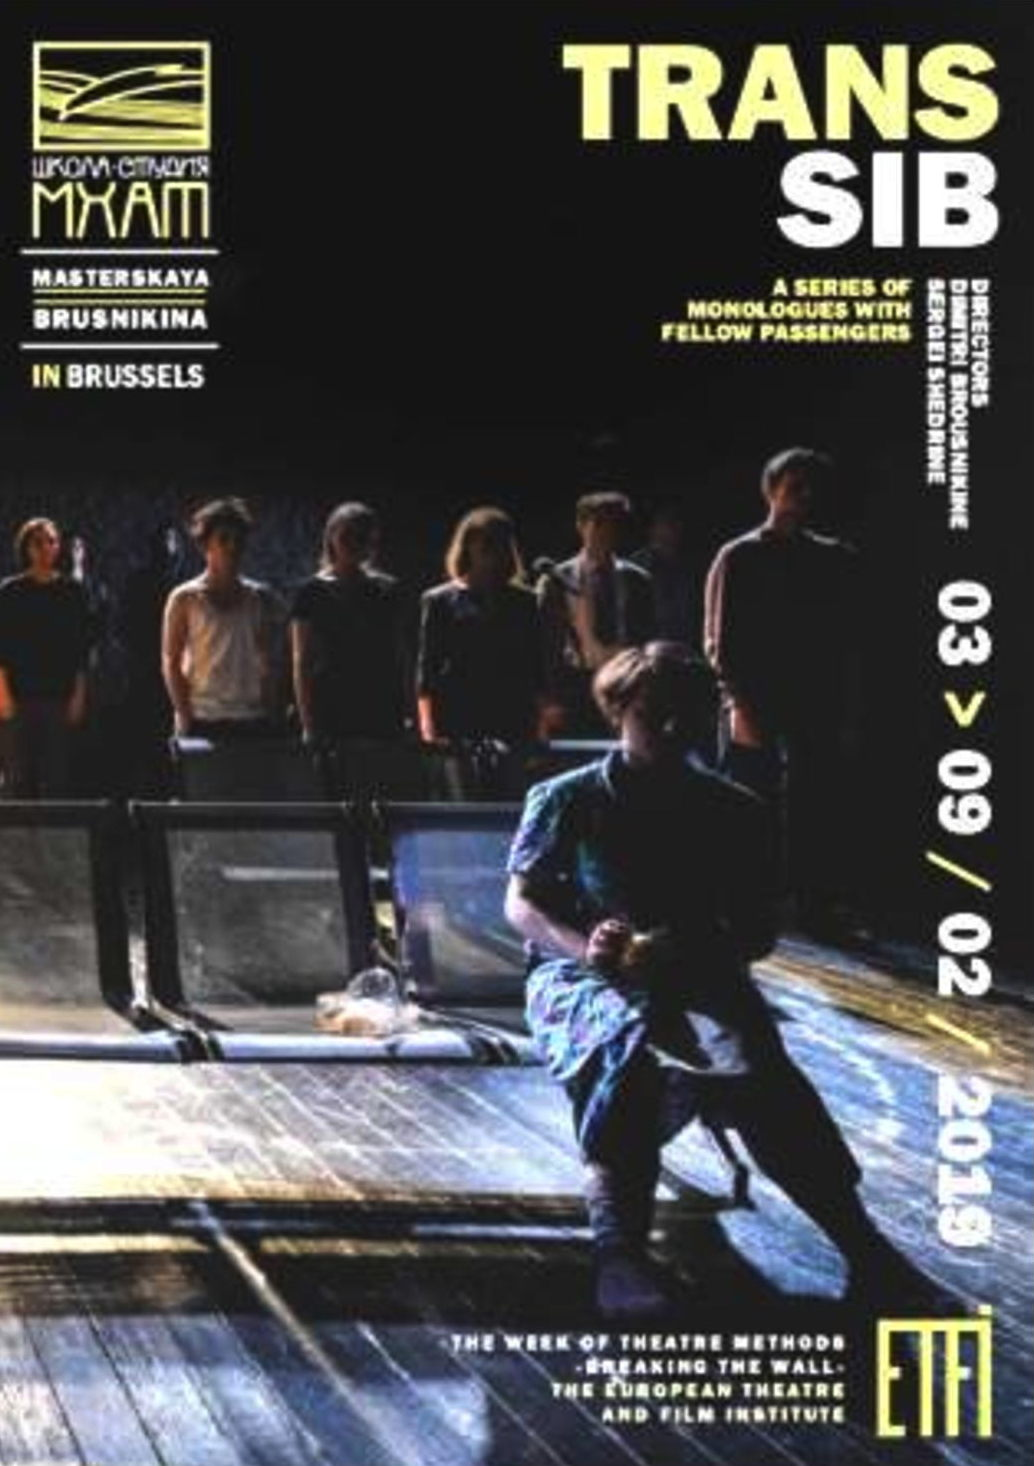 Affiche. EFTI - European Theatre and Film Institute, Bruxelles. Transsib. 2019-02-06